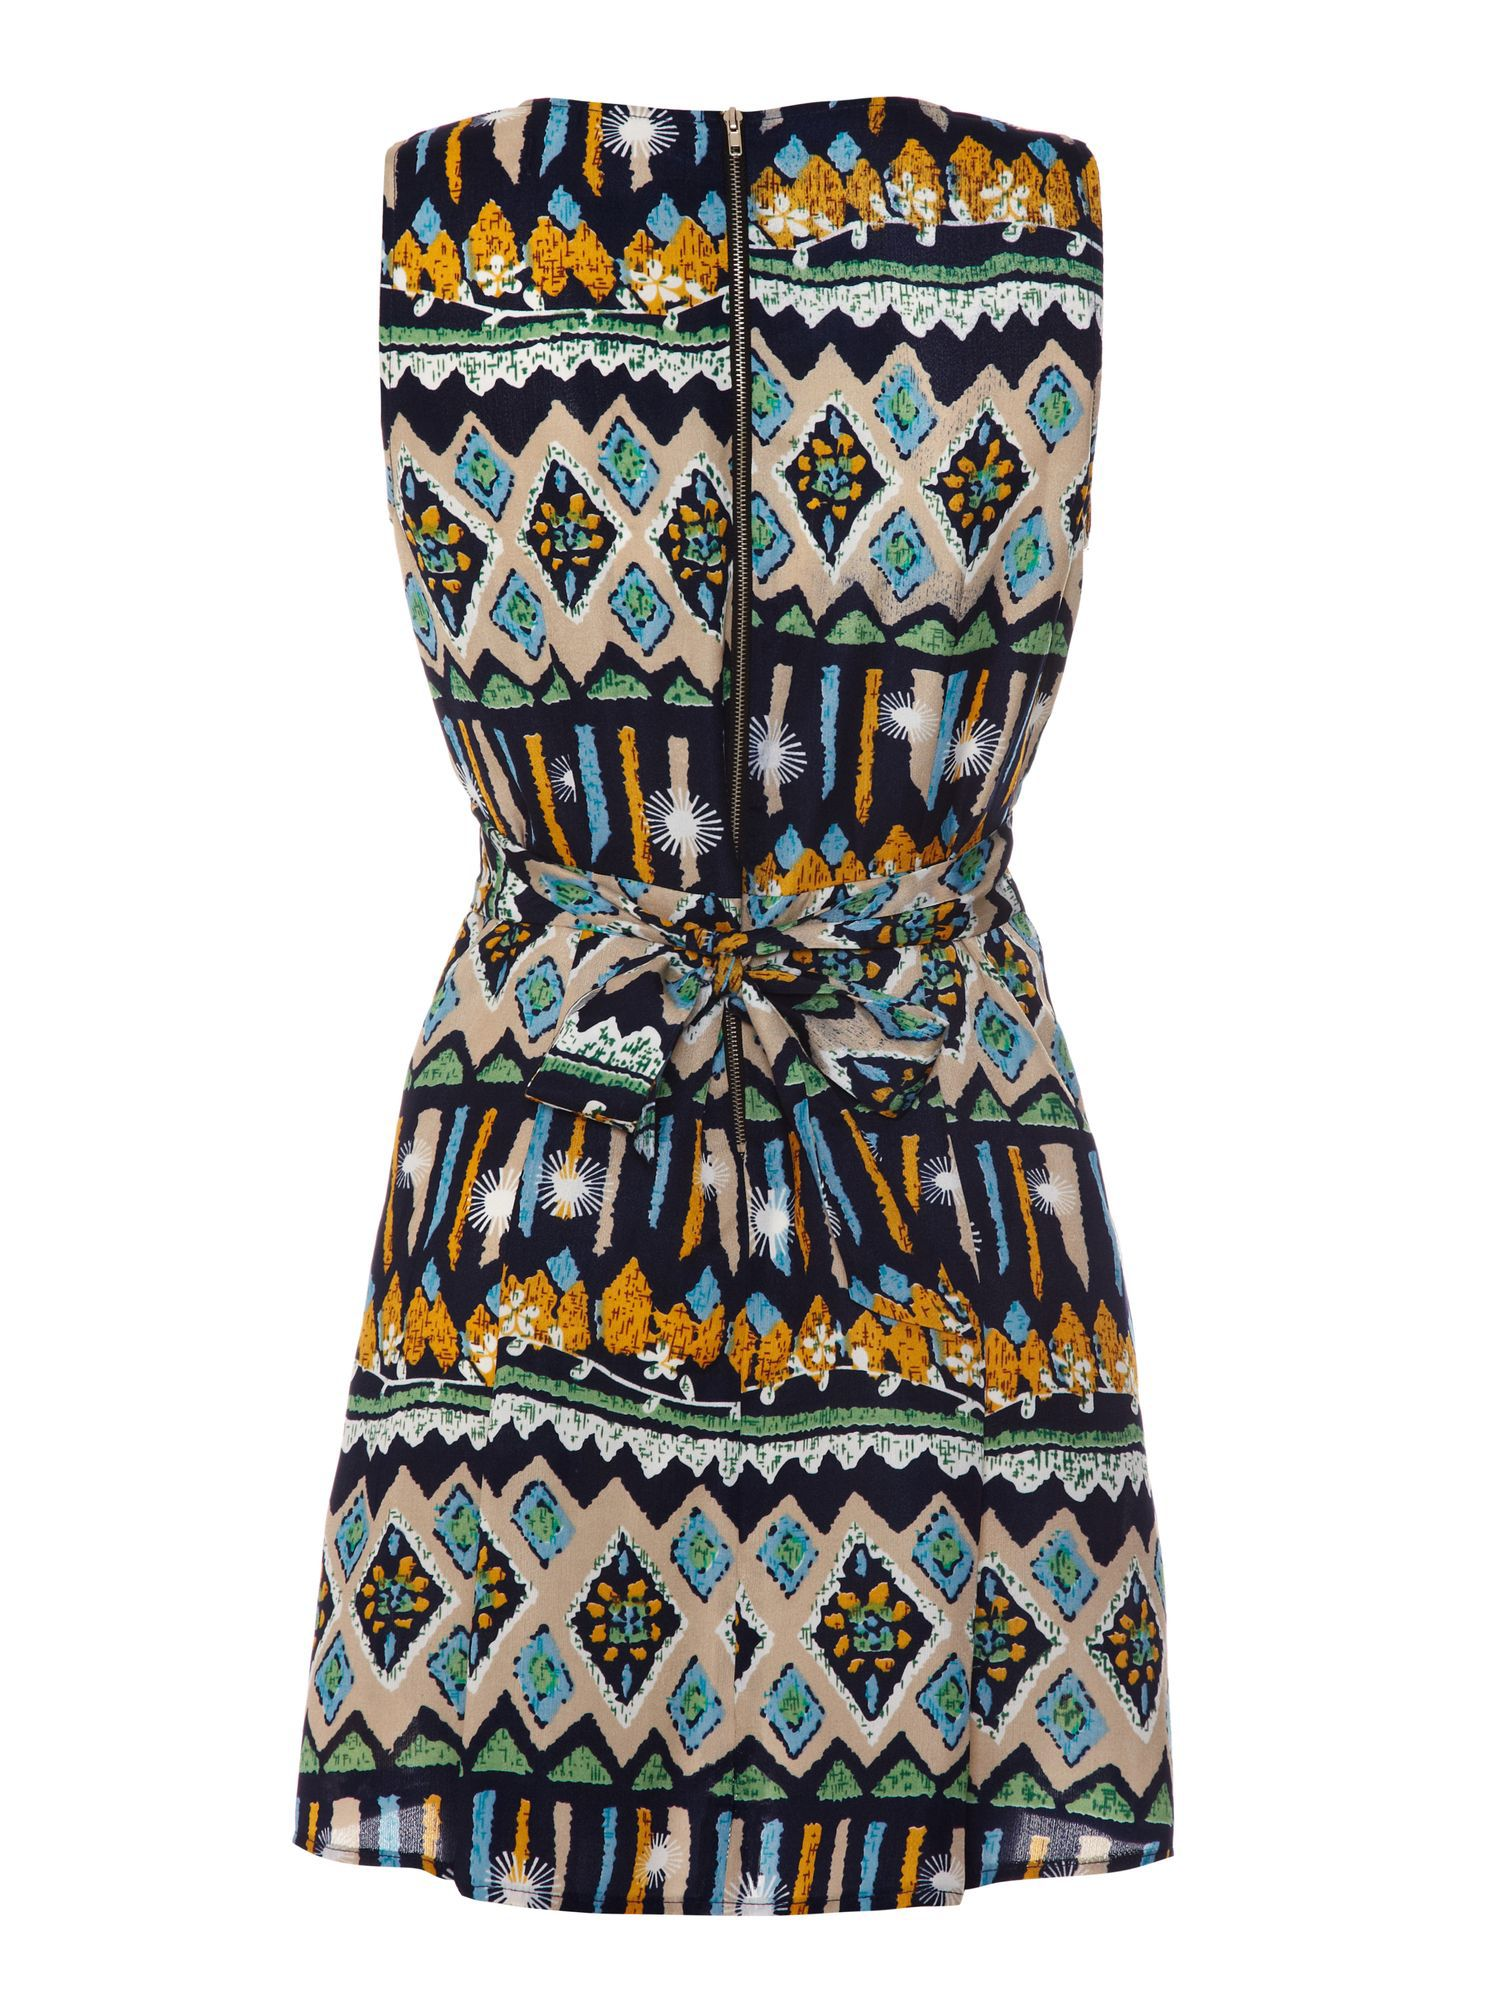 Tribal v neck dress